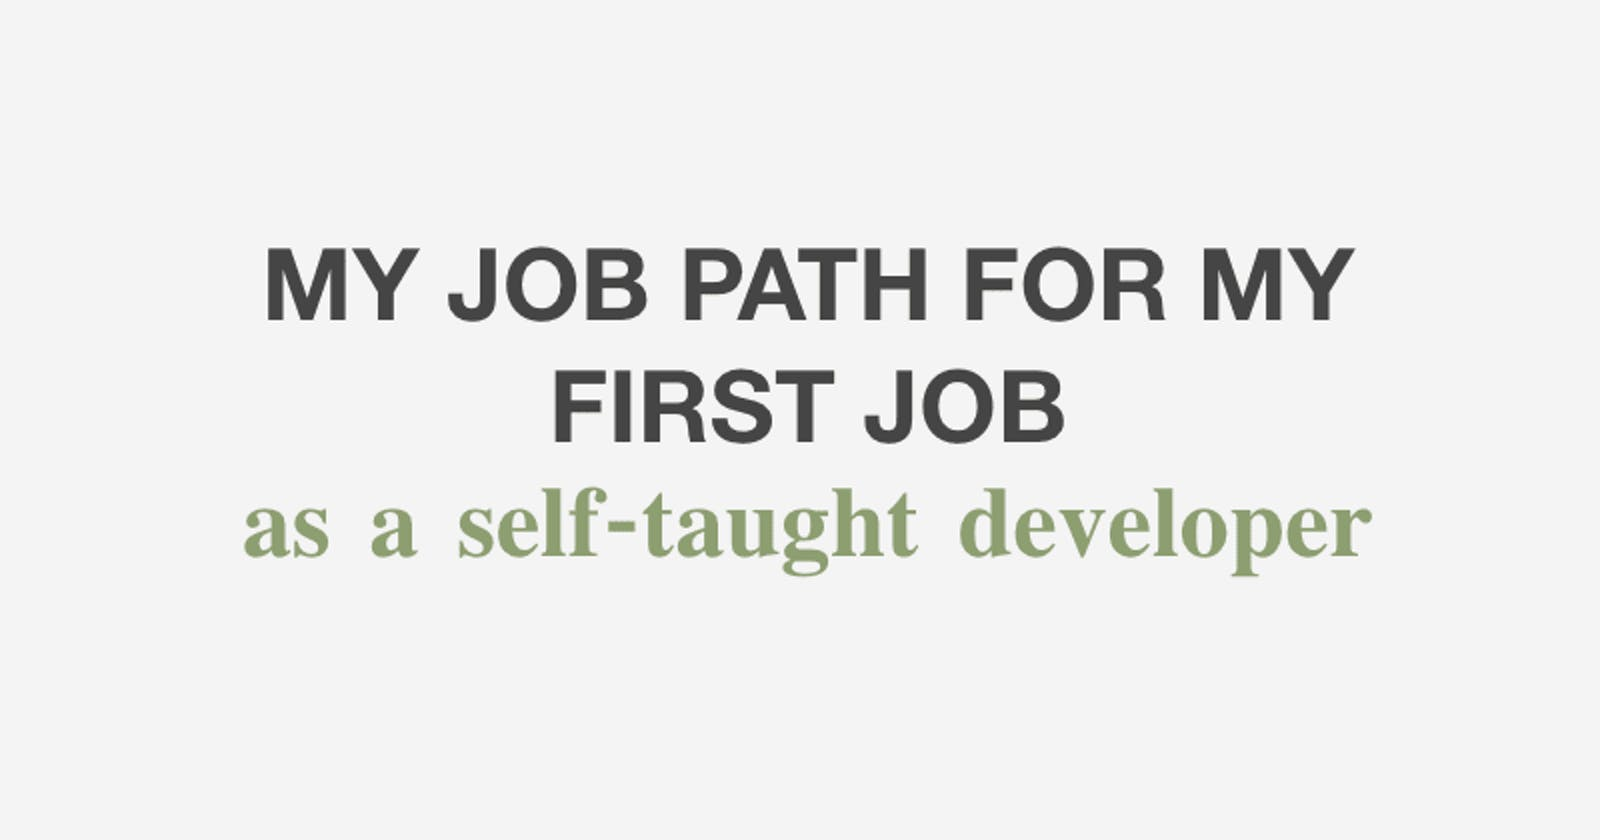 My job path for my first job as a self-taught developer